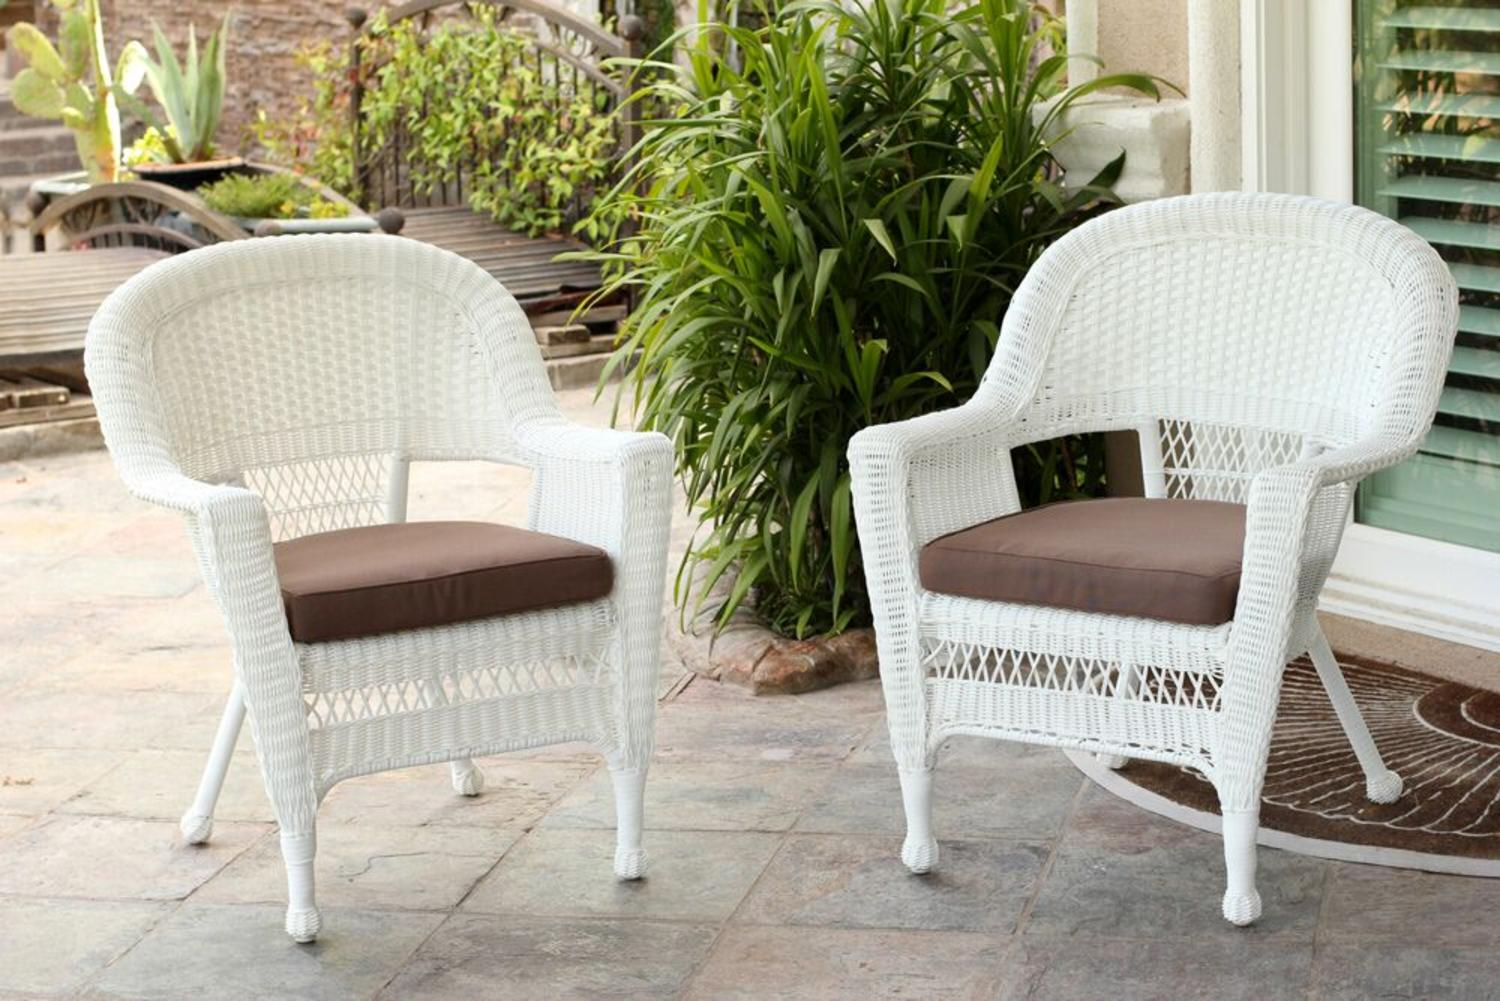 Set of 4 White Resin Wicker Outdoor Patio Garden Chairs ...